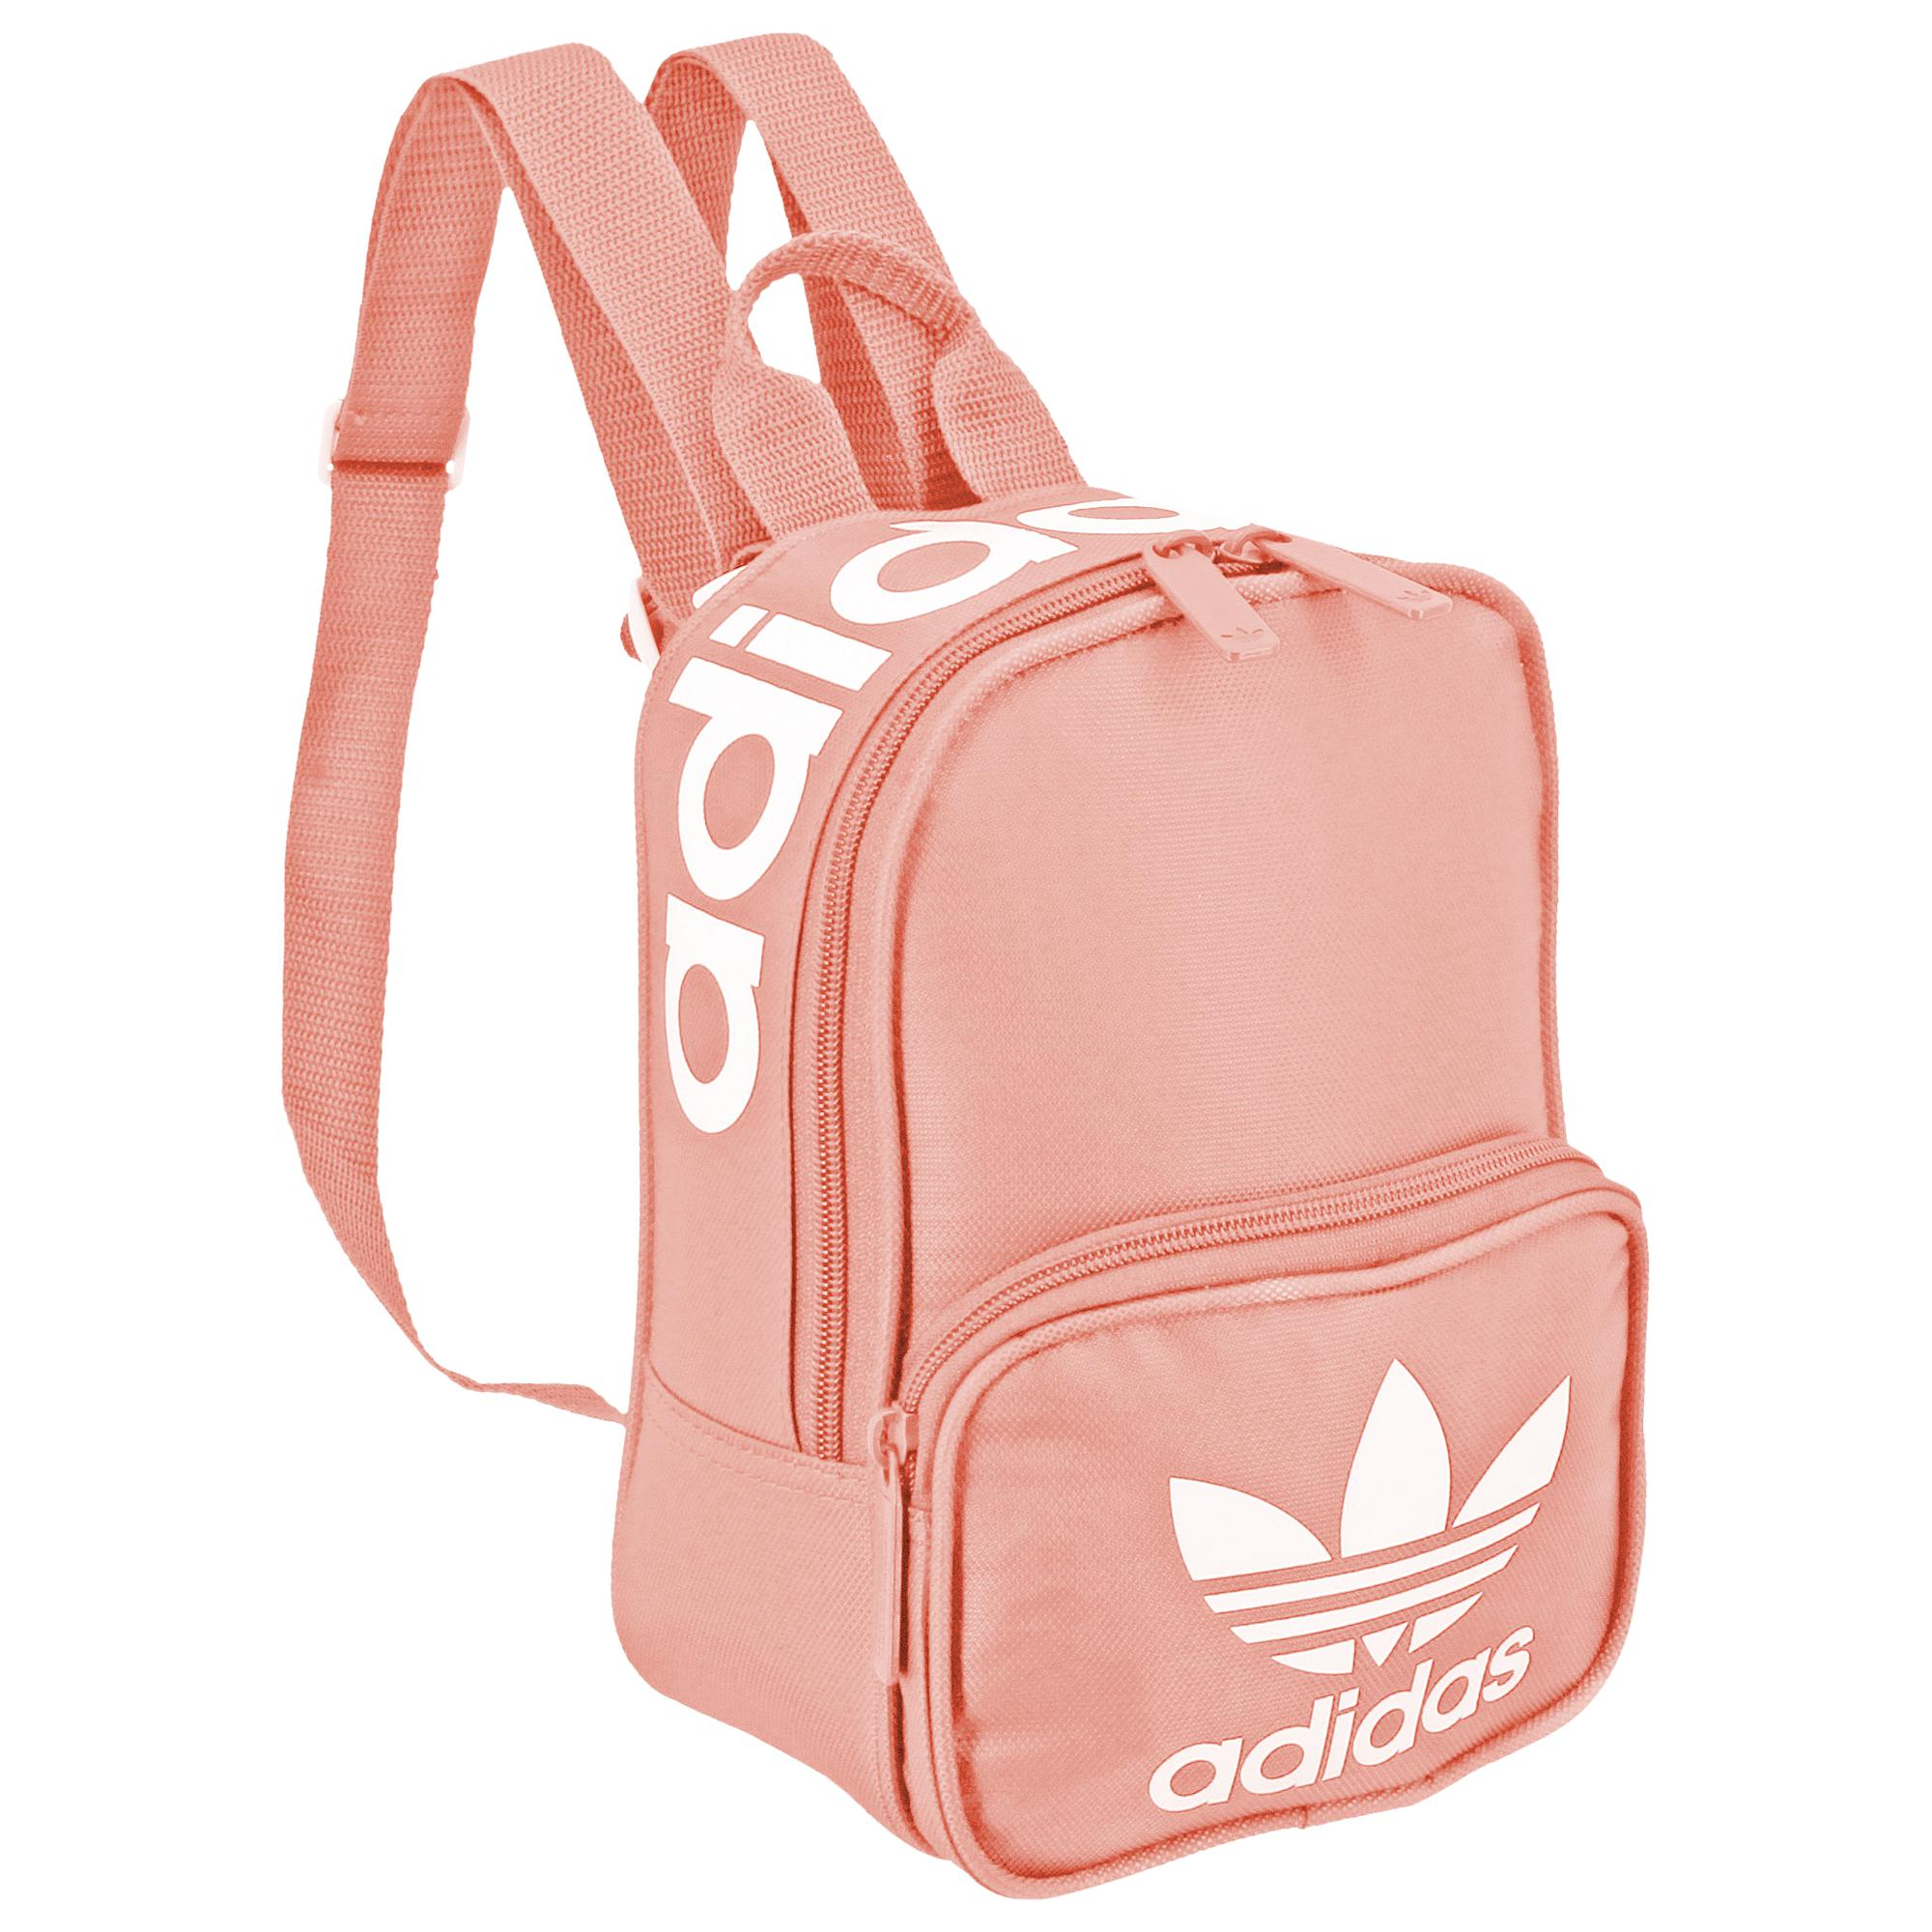 Lyst - adidas Originals Santiago Mini Backpack in Pink 9909ed1ef239b